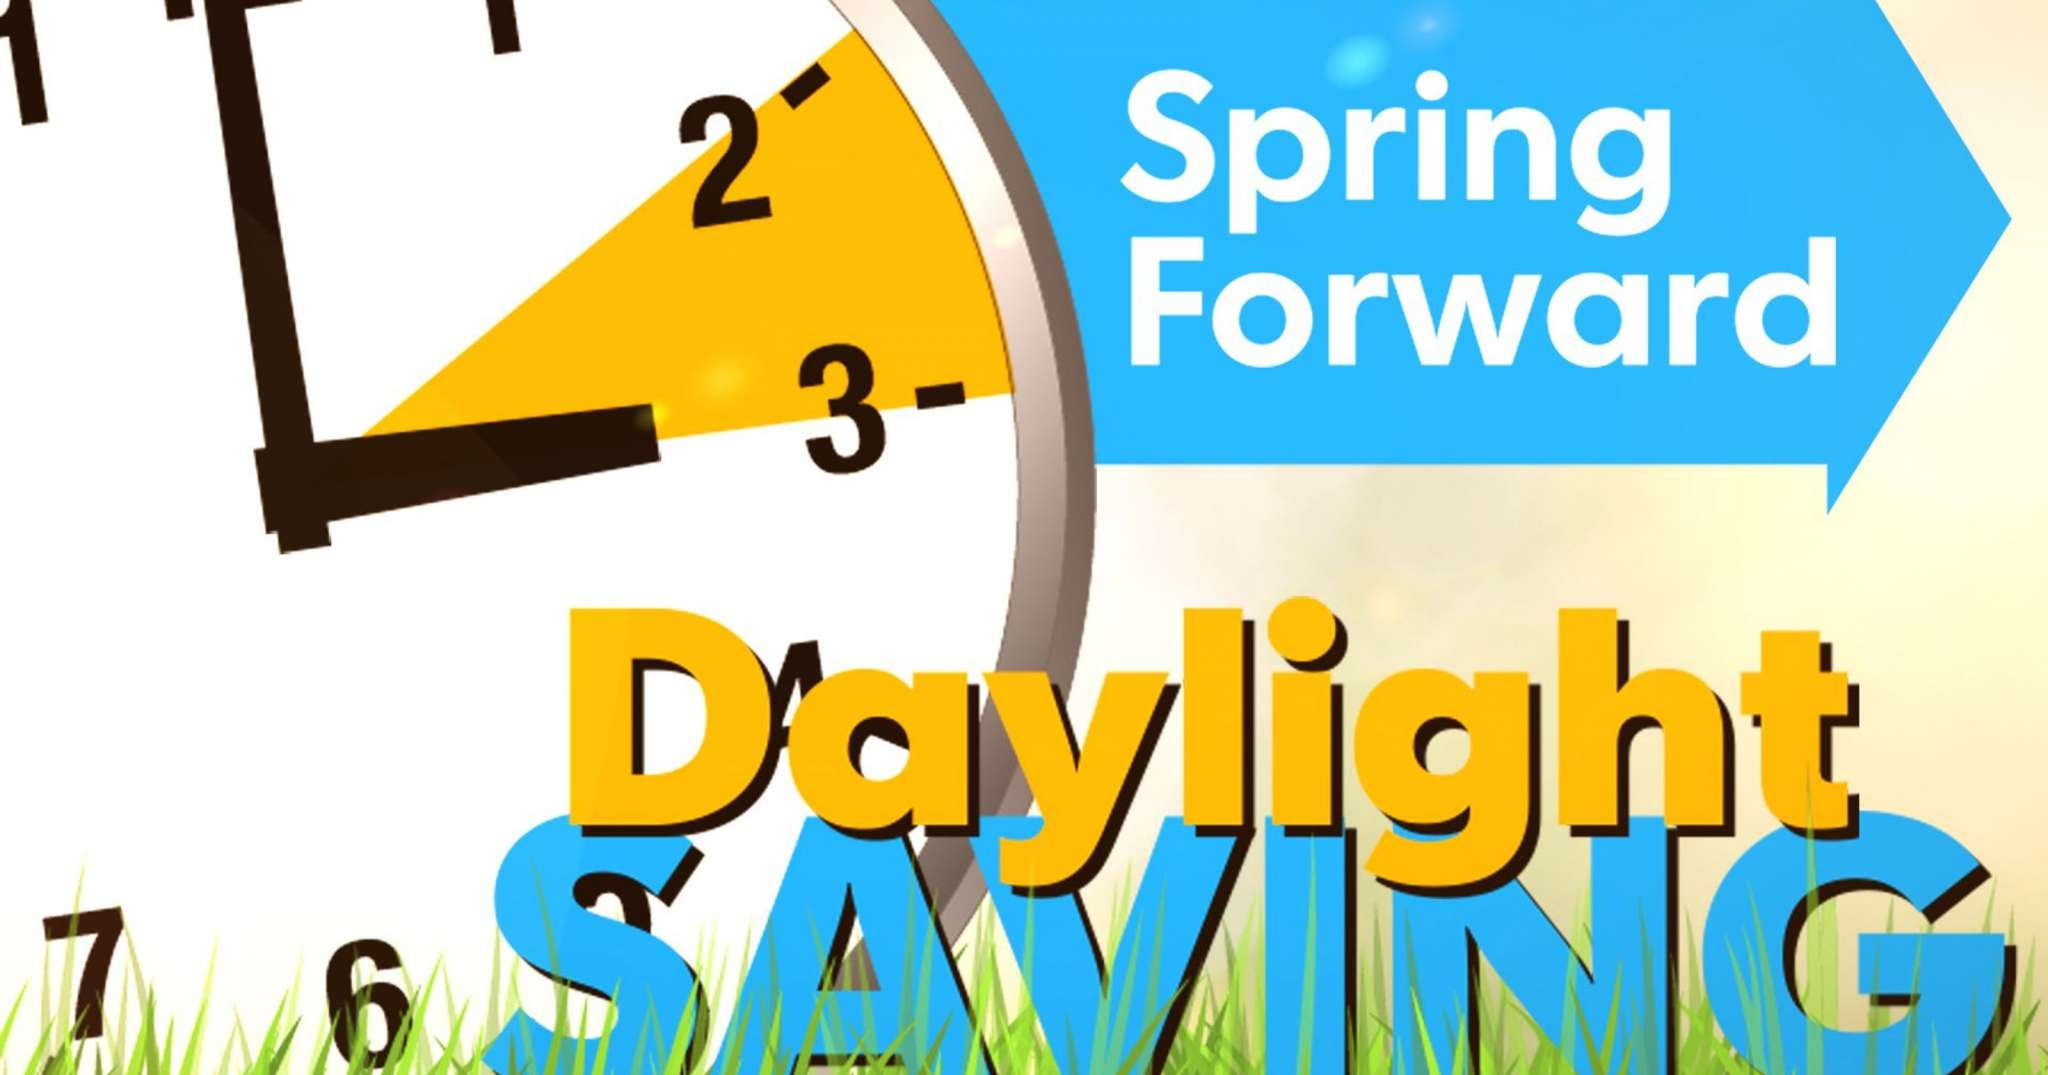 Daylight Saving Starts